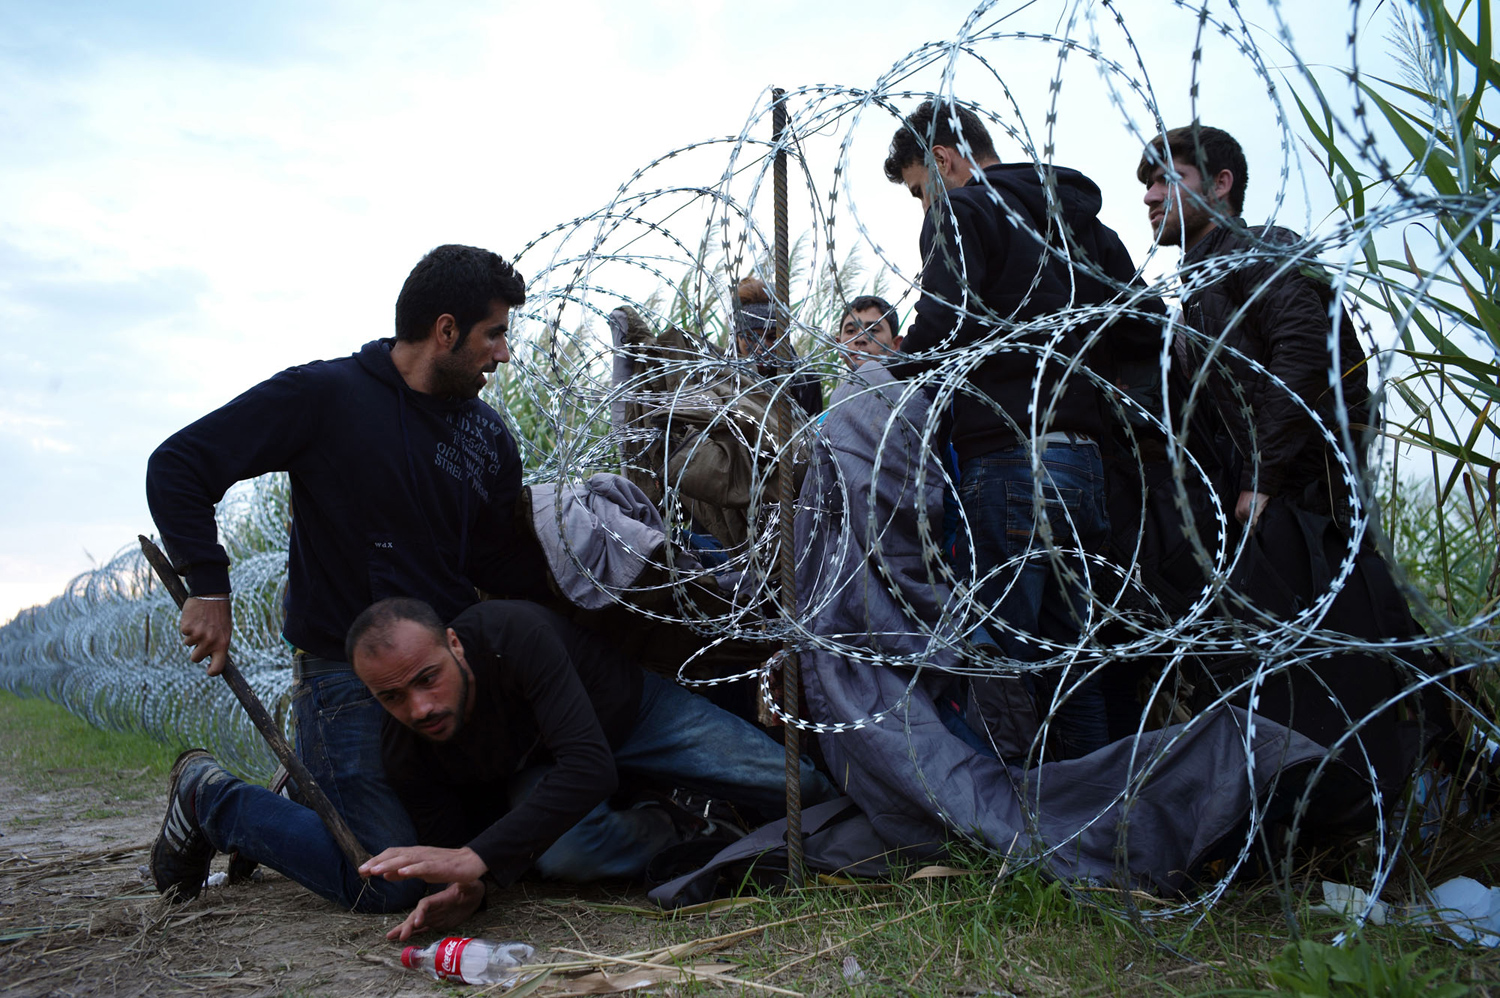 The path of migrants in Europe 27